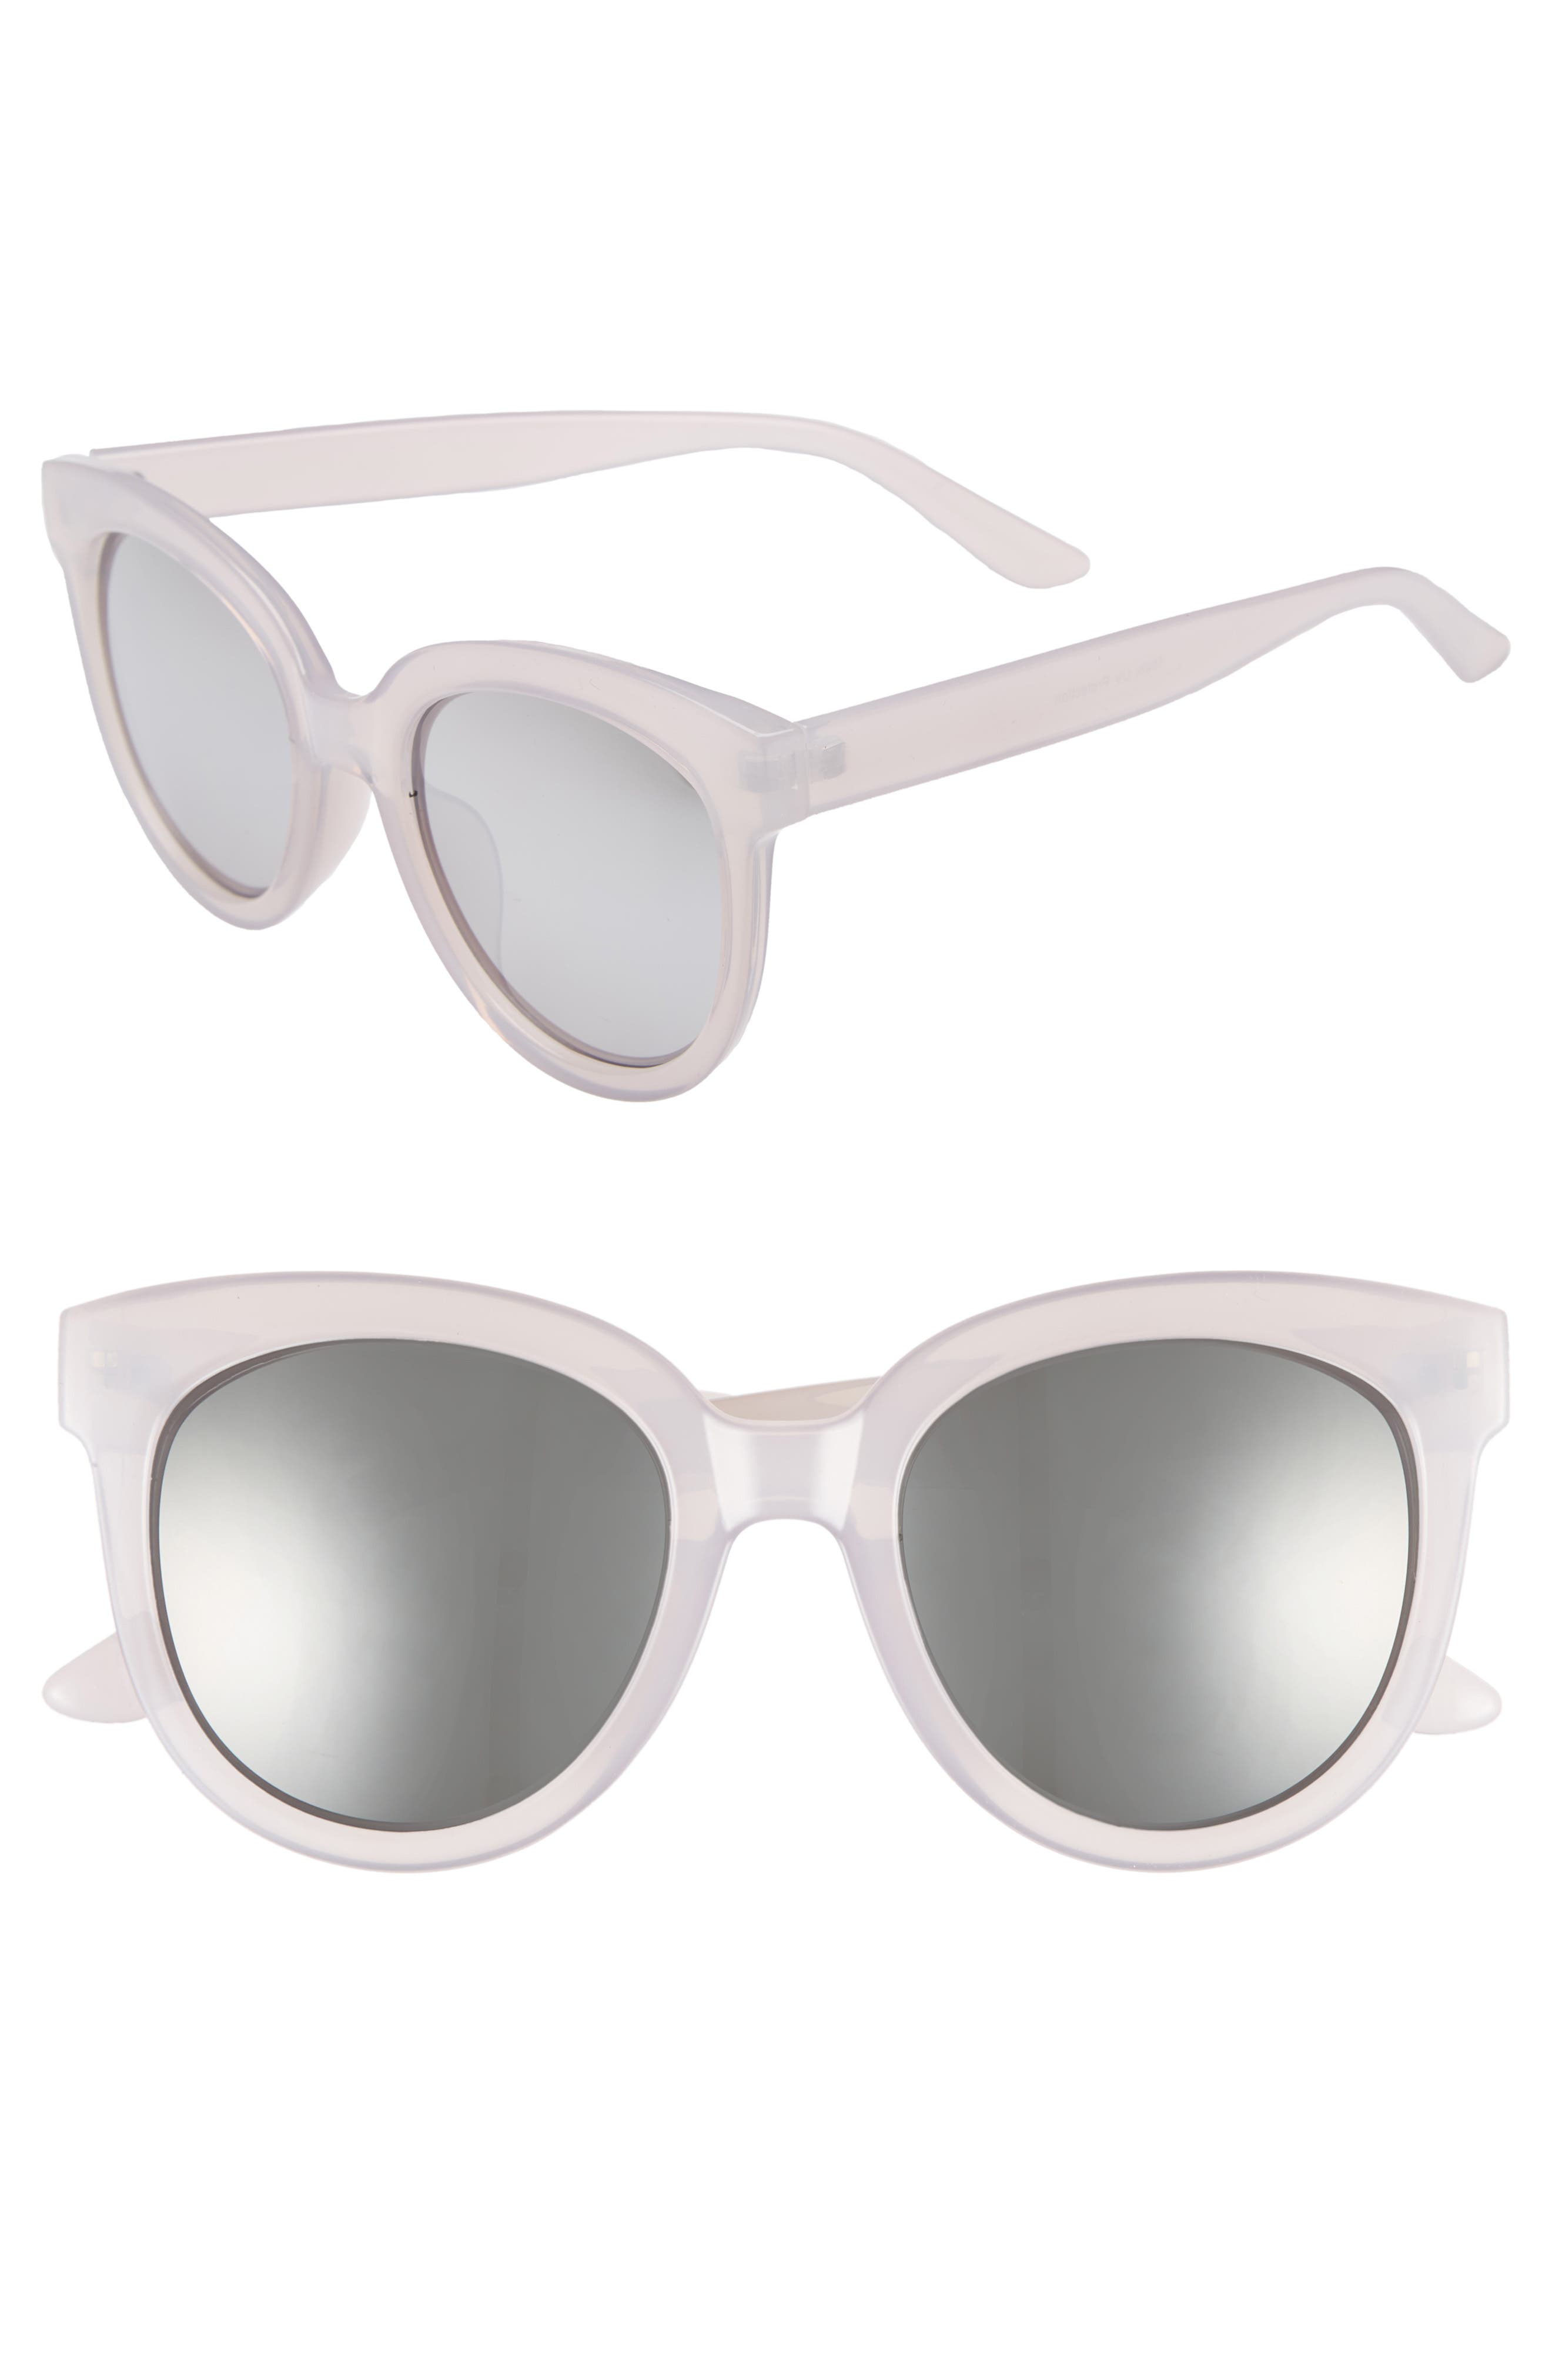 53mm Frosted Cat Eye Sunglasses,                         Main,                         color, Milky Gray/ Silver